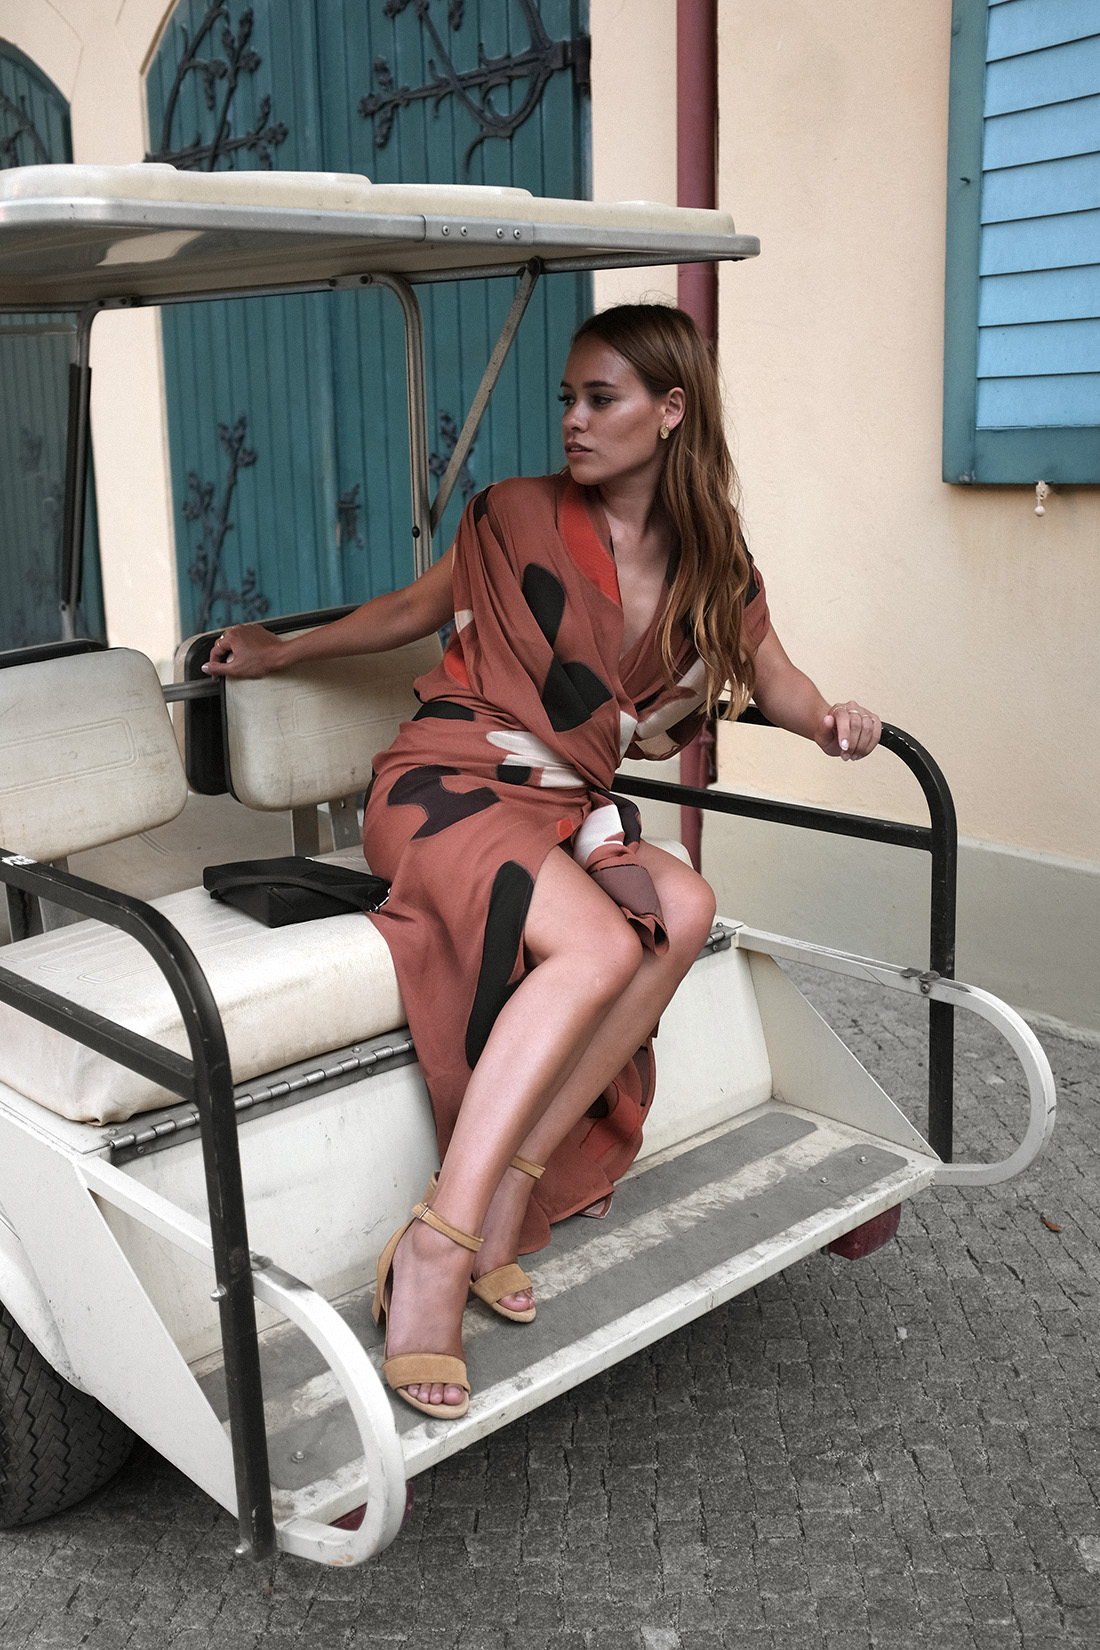 Jacquemus La Robe Henri asymmetric twisted dress, Loewe Puzzle bag suede, Tabitha Simmons Leticia 75 sandals, L'Or Liquide earrings by teetharejade